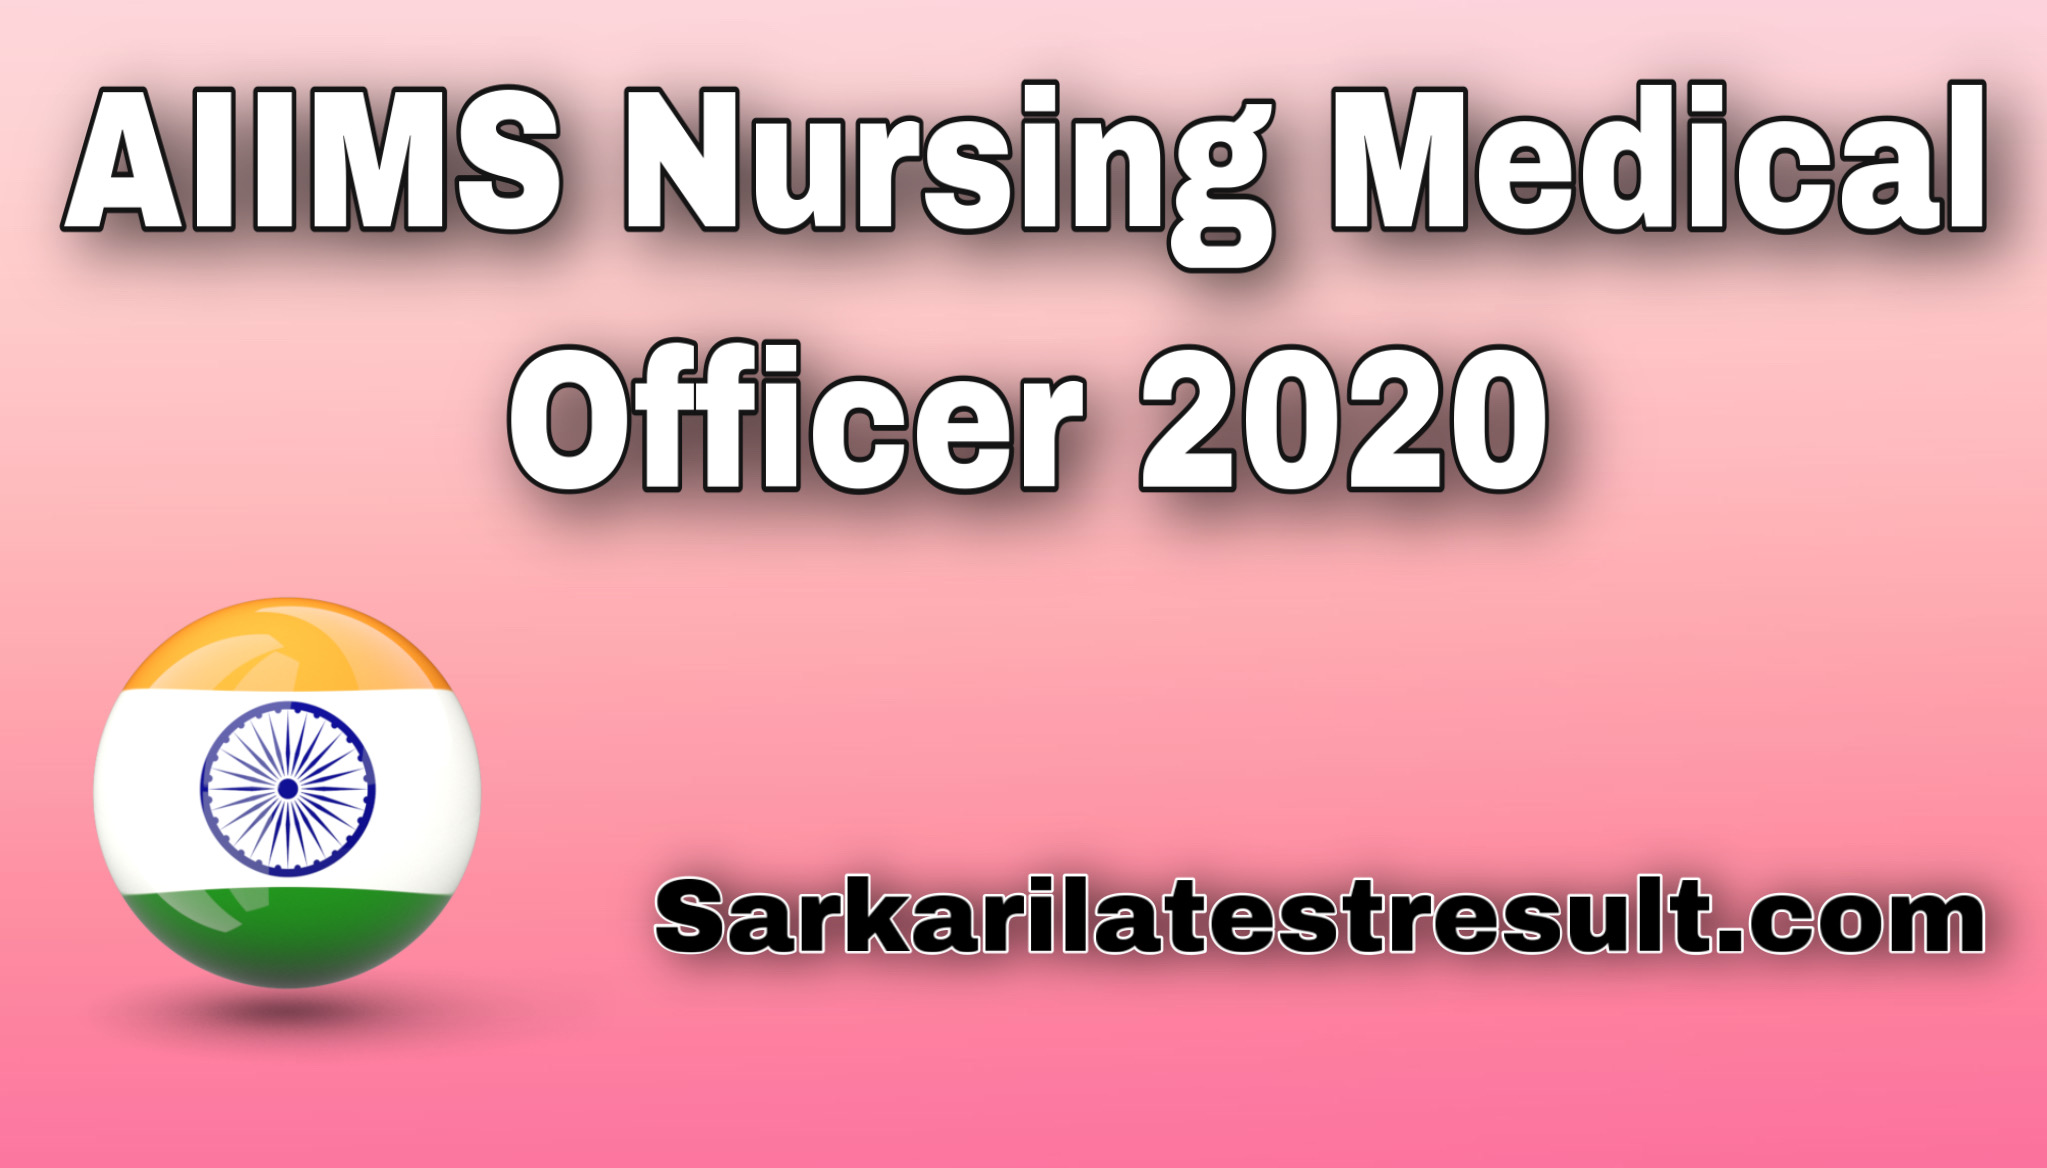 AIIMS Nursing Medical Officer Result 2020